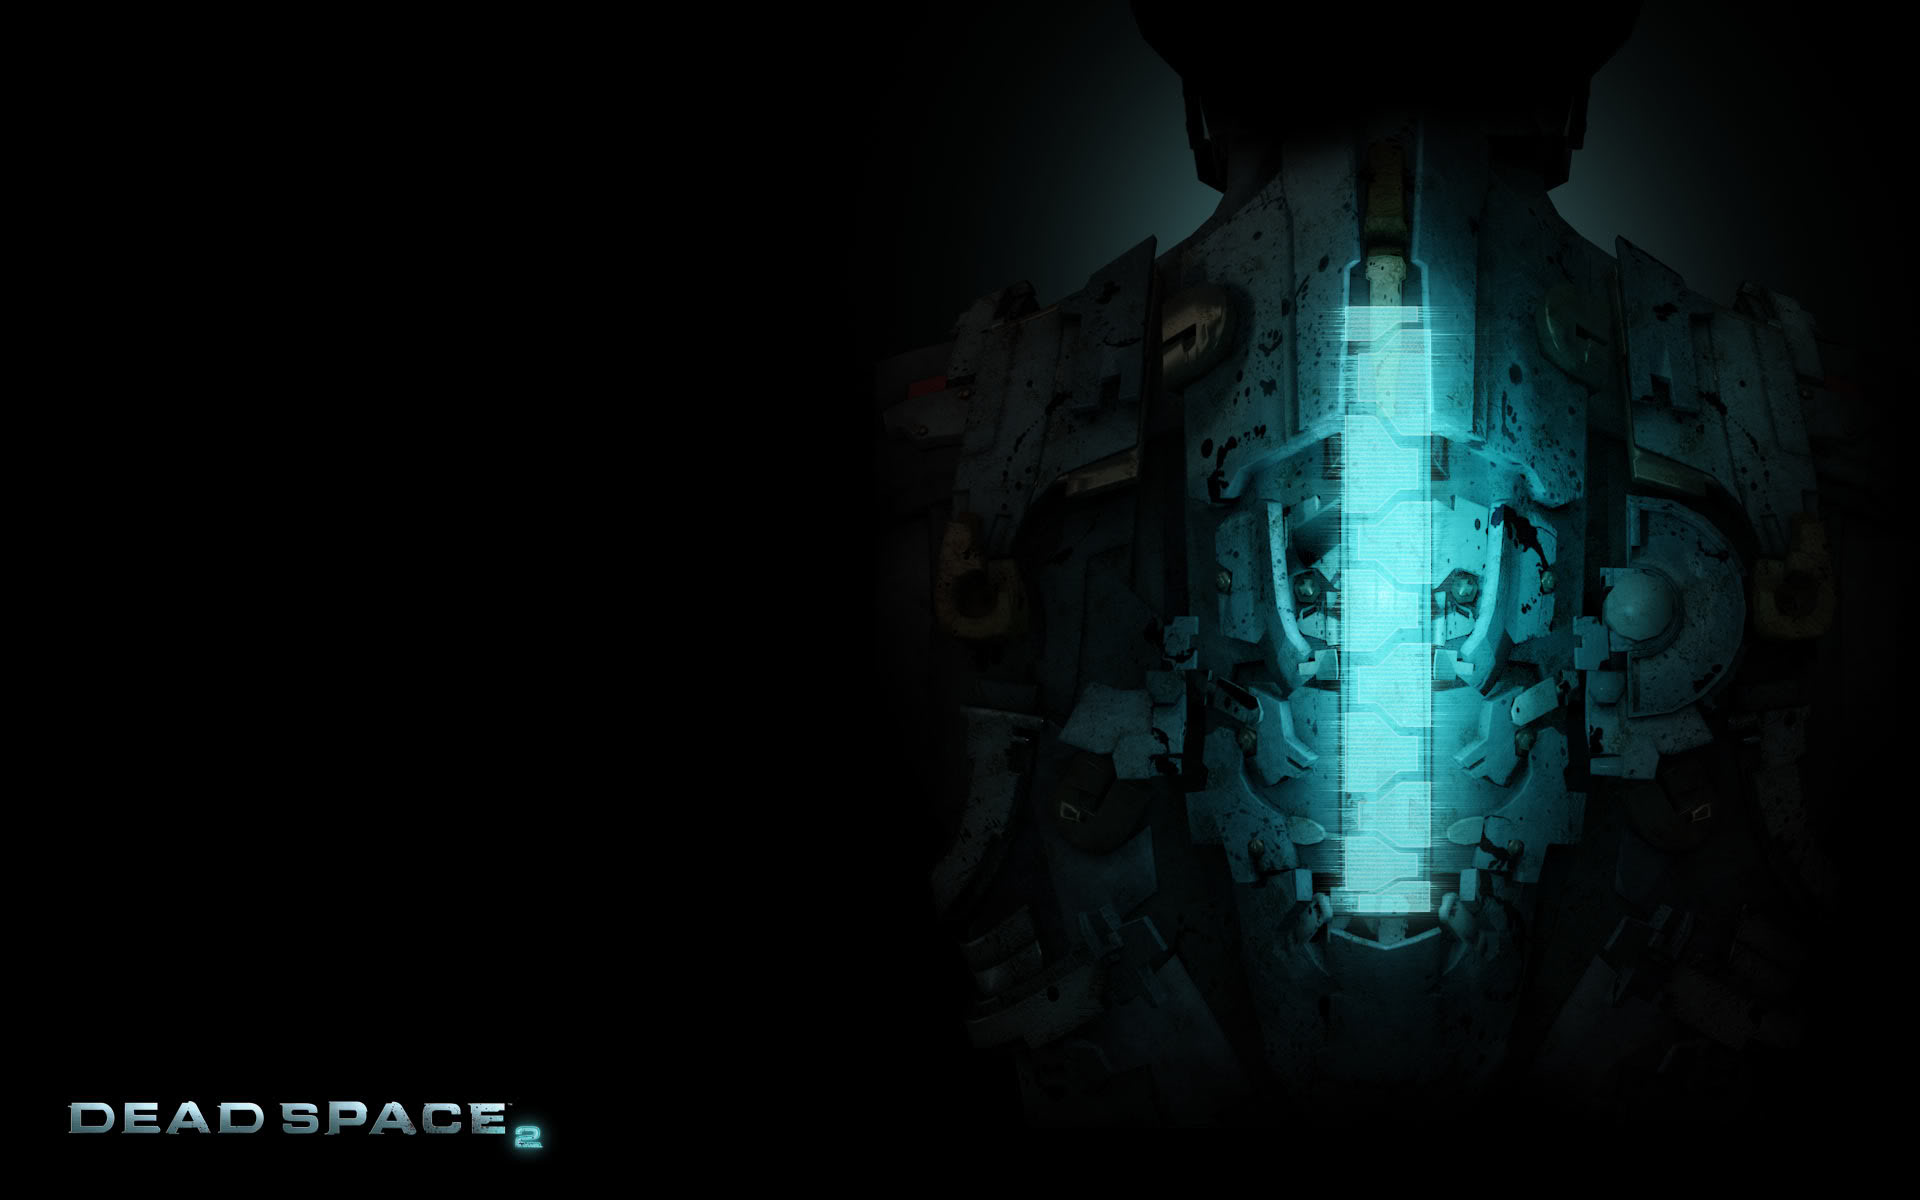 Dead Space 2 Wallpaper Showdown Thanks To Wallpaper4me FrankdaRabbit And NerdReactor